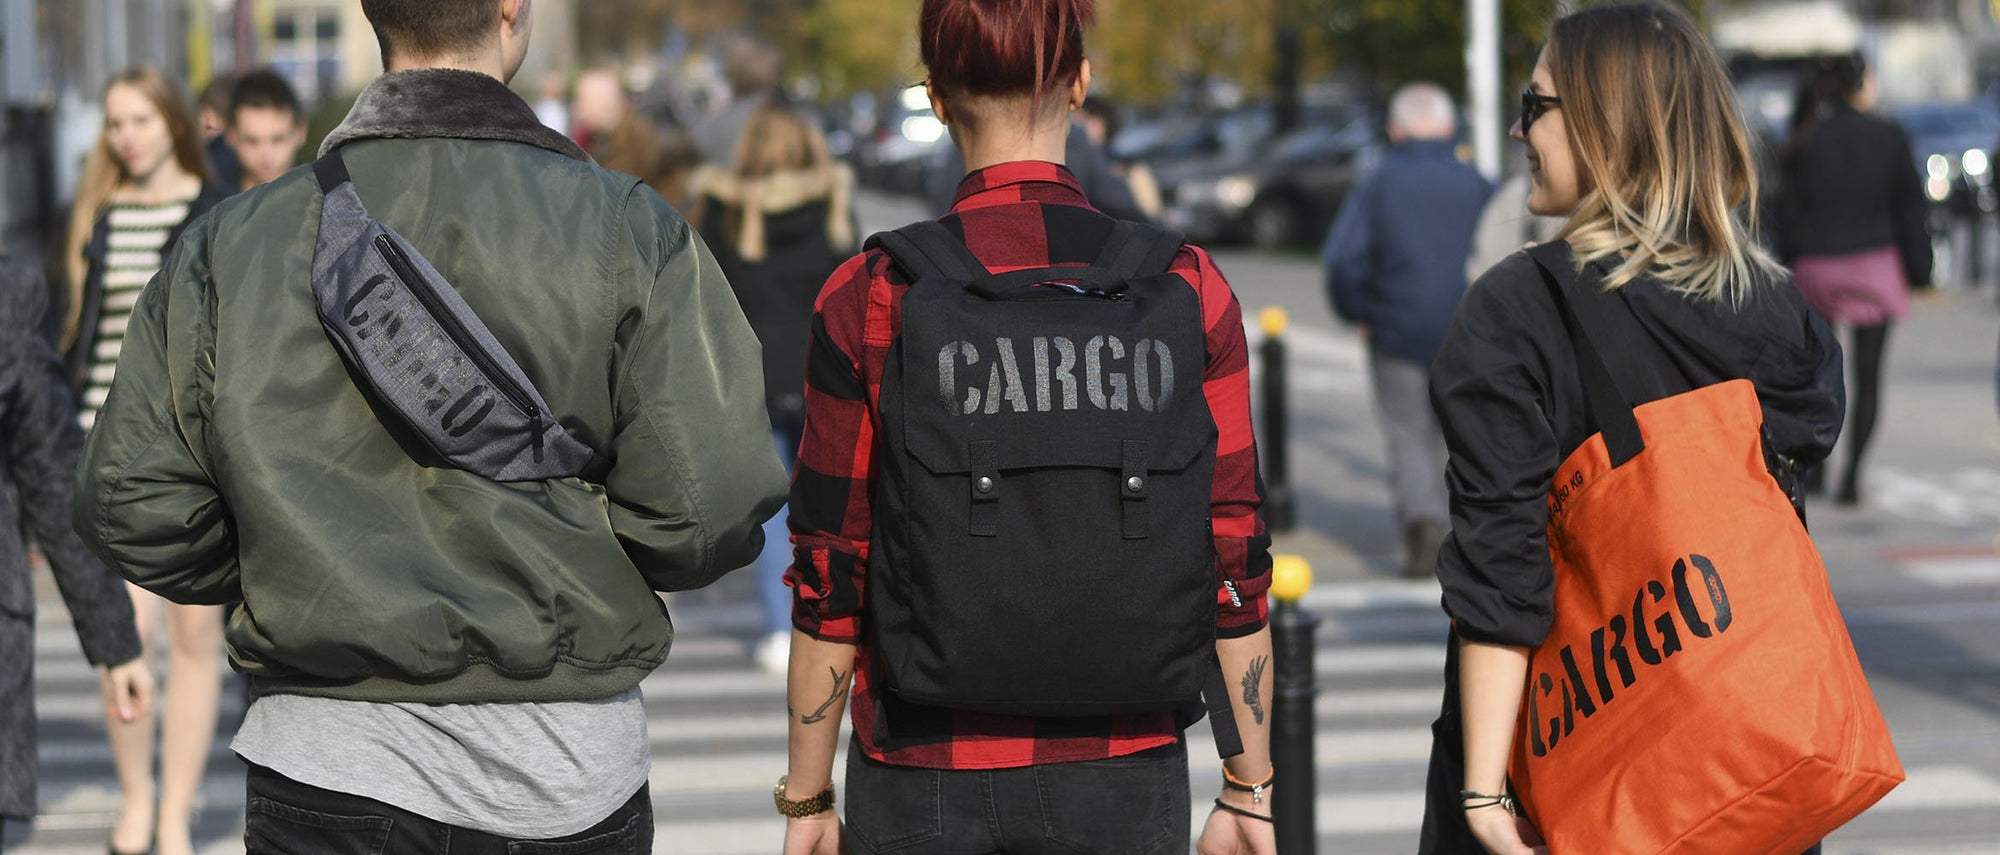 CARGO by OWEE | The Story